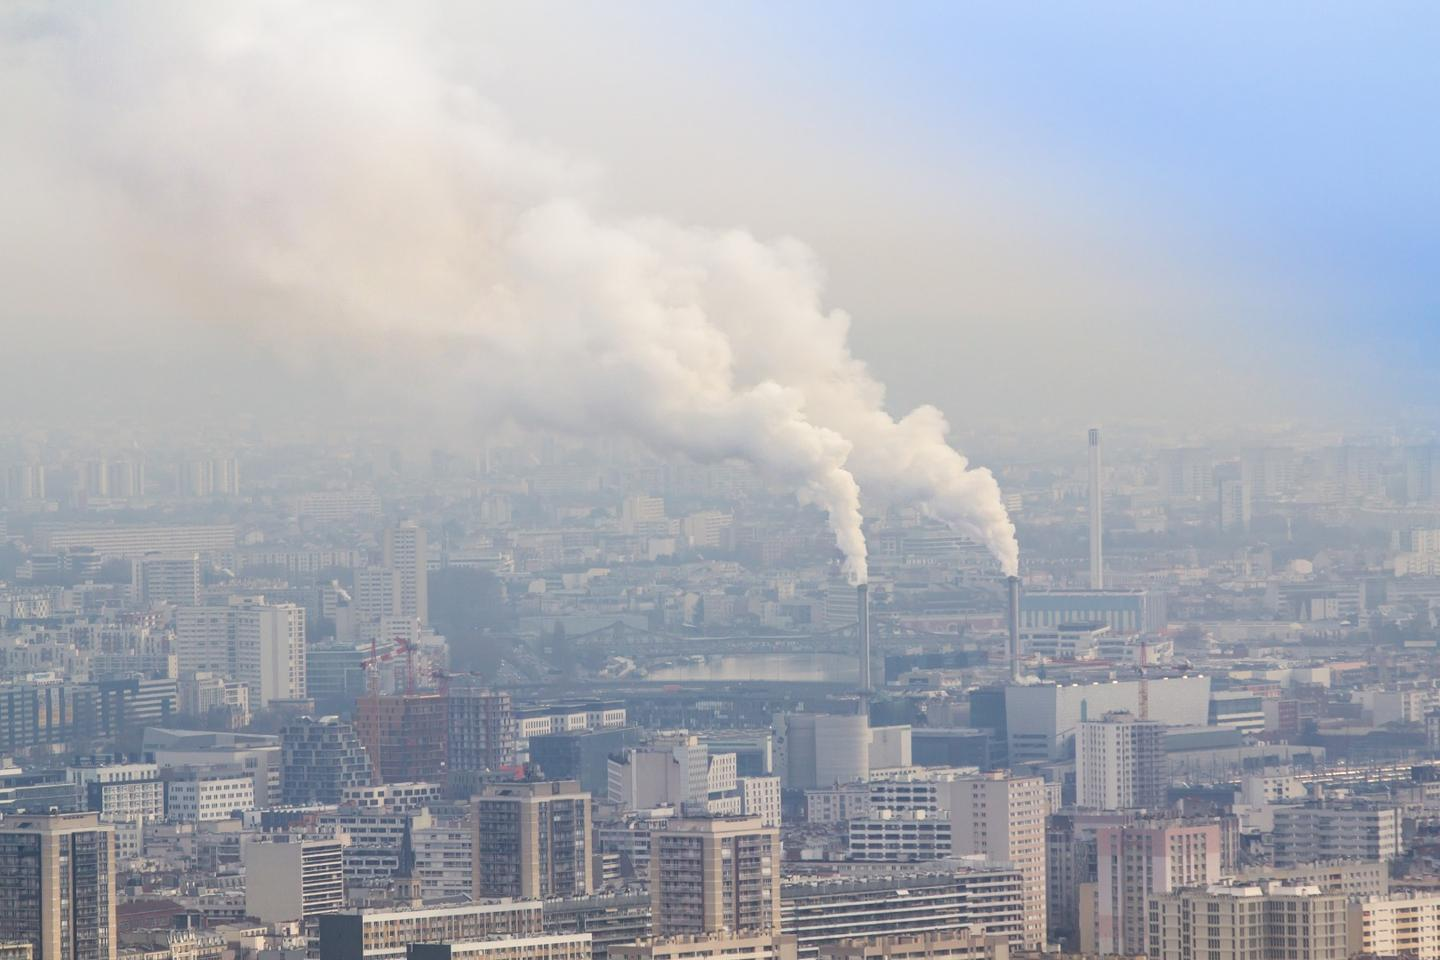 Air pollution and high temperatures pose a significant threat to vulnerable urban populations